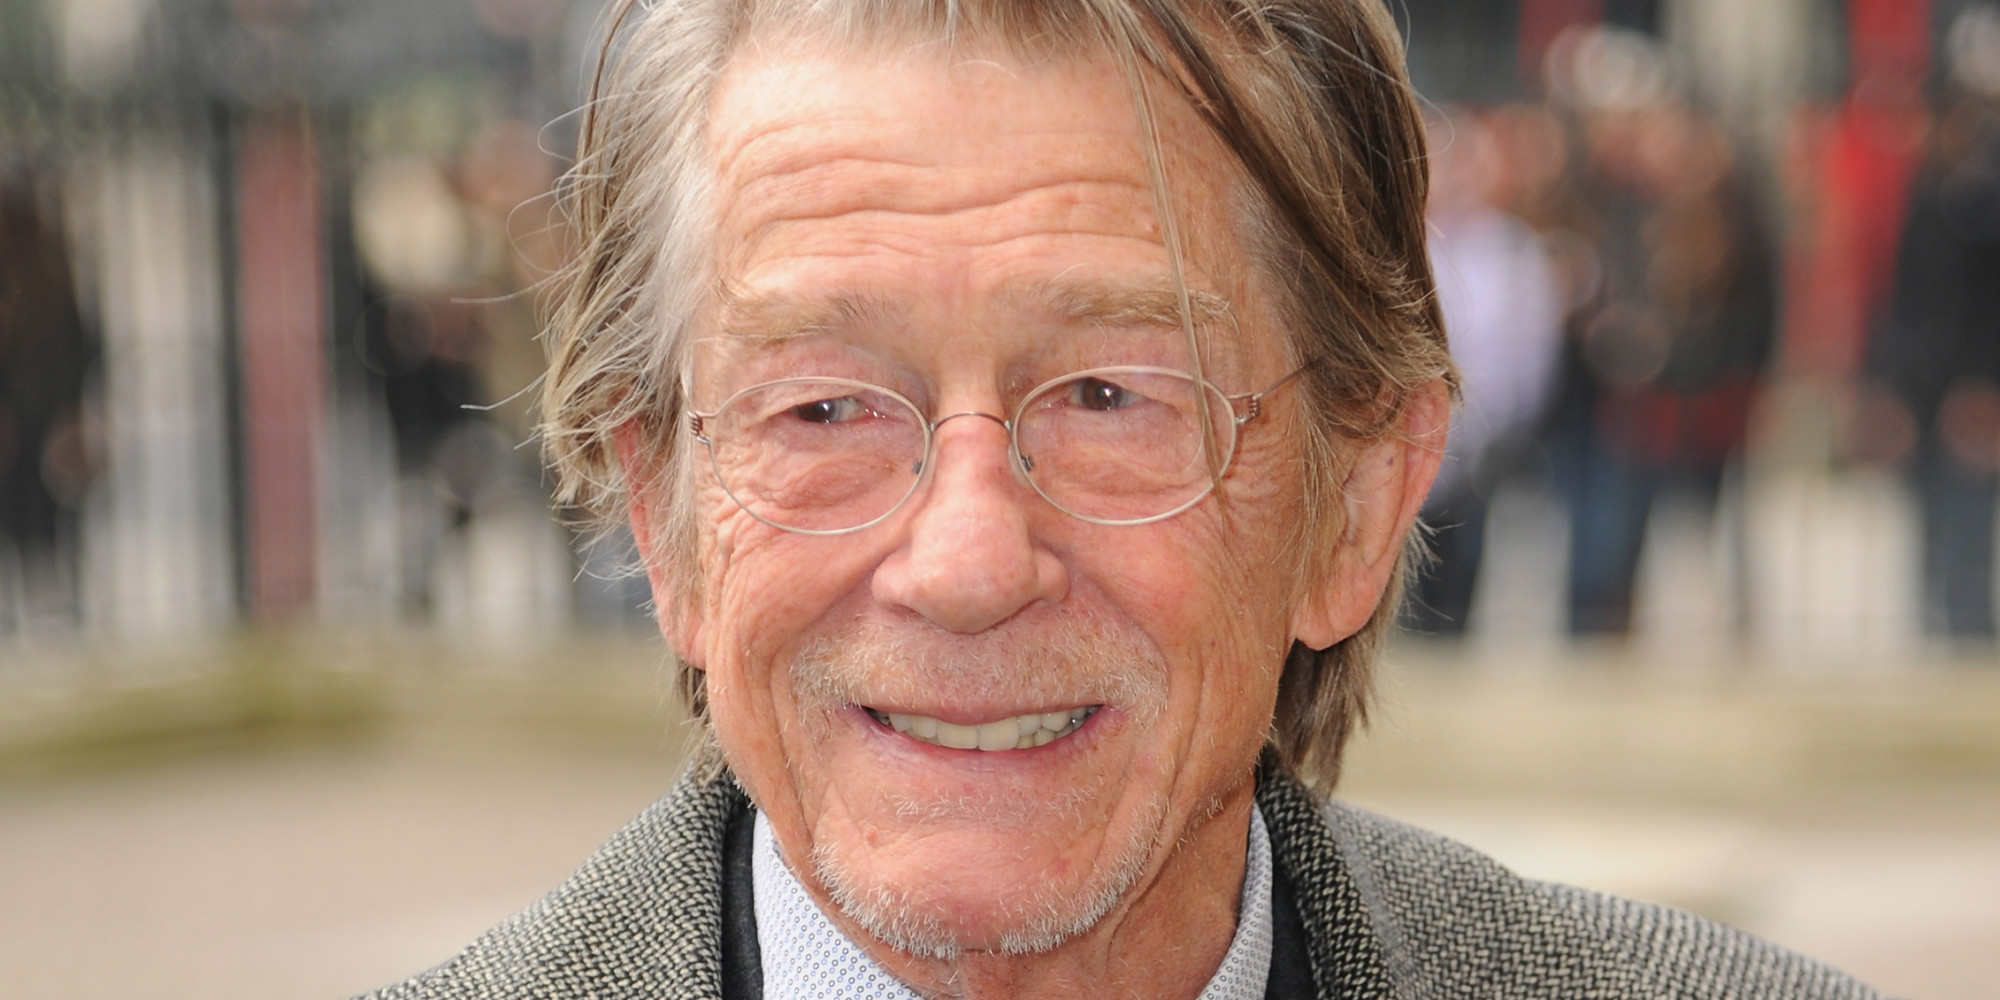 Danelle Weaver Sean John Clothing John Hurt Reveals He Has